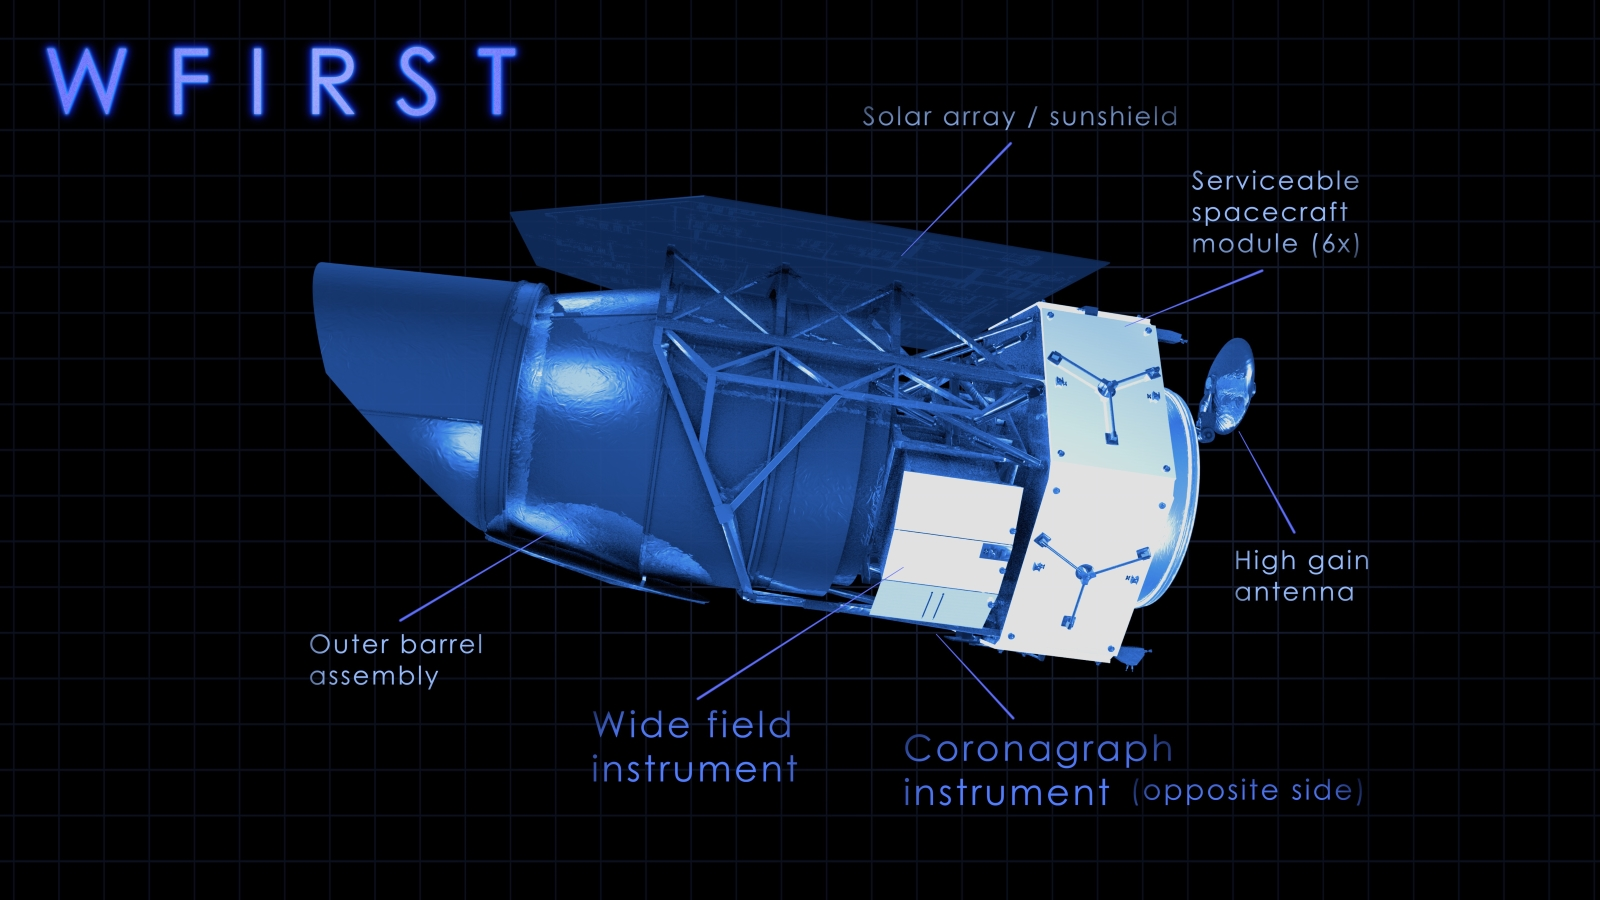 The WFIRST spacecraft. Image Credit: NASA / Goddard Space Flight Center.